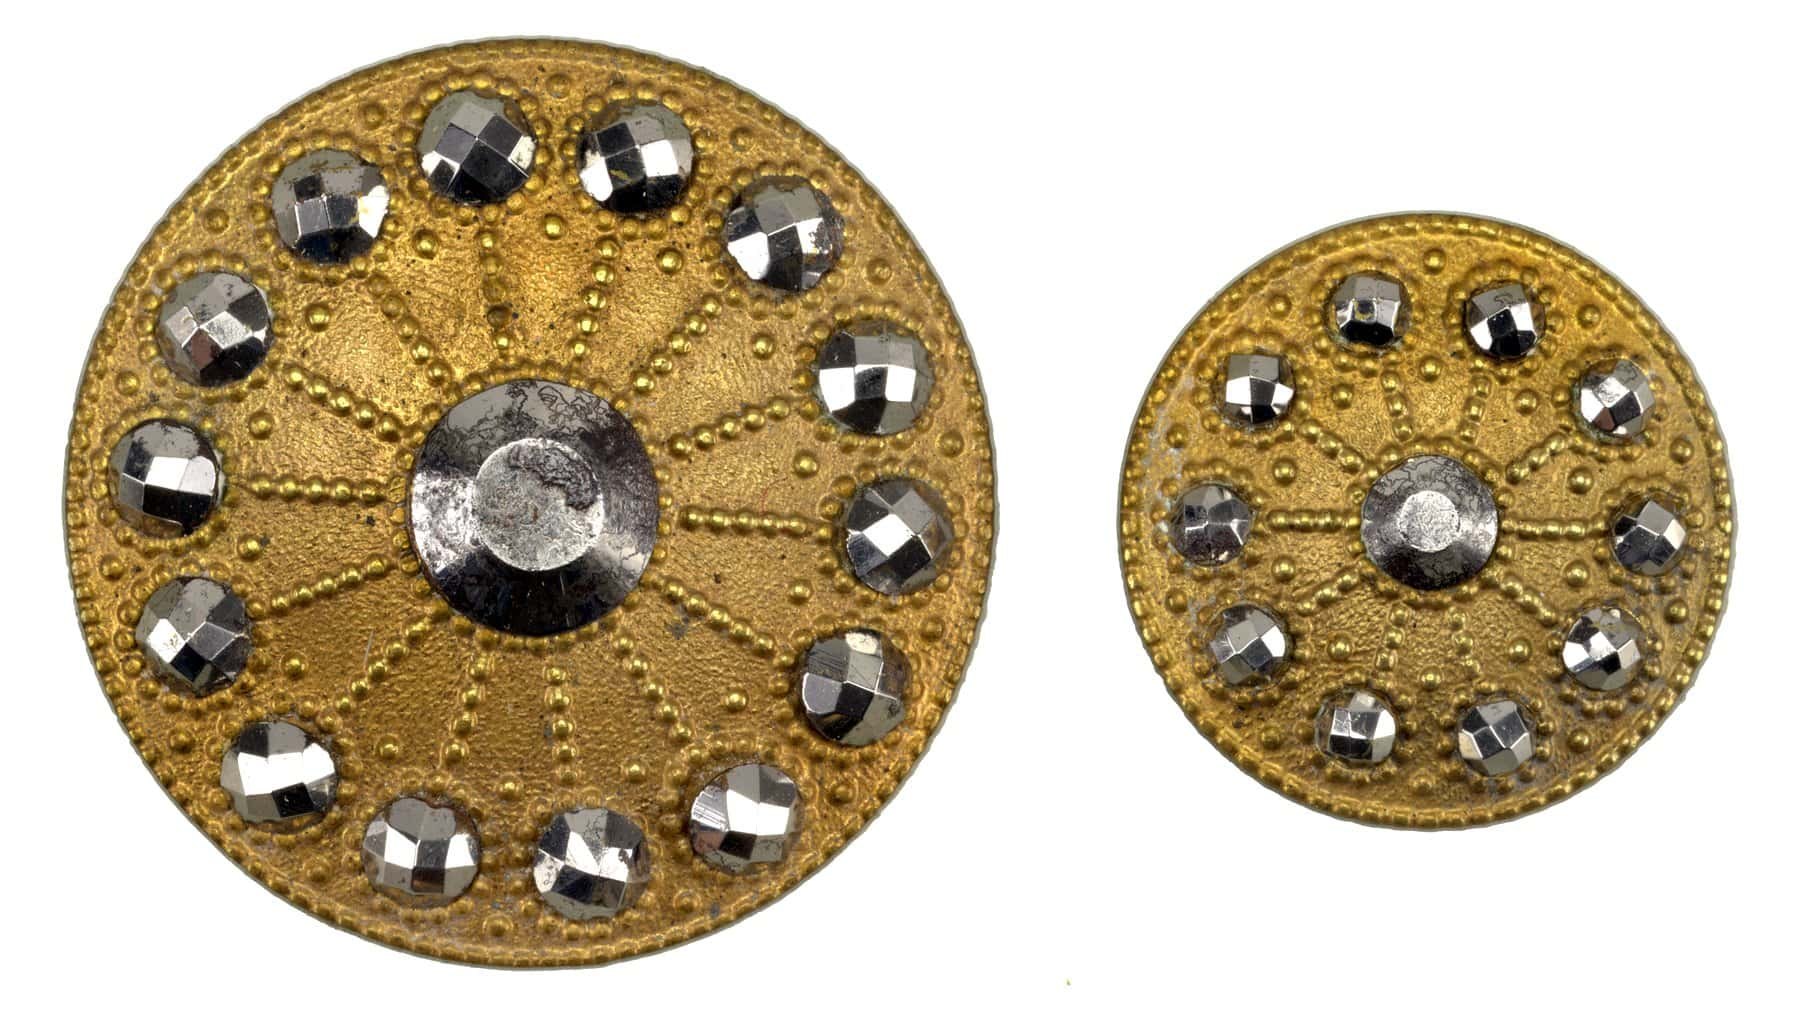 19th century brass buttons with cut steel knobs set in wheel-shaped ornaments